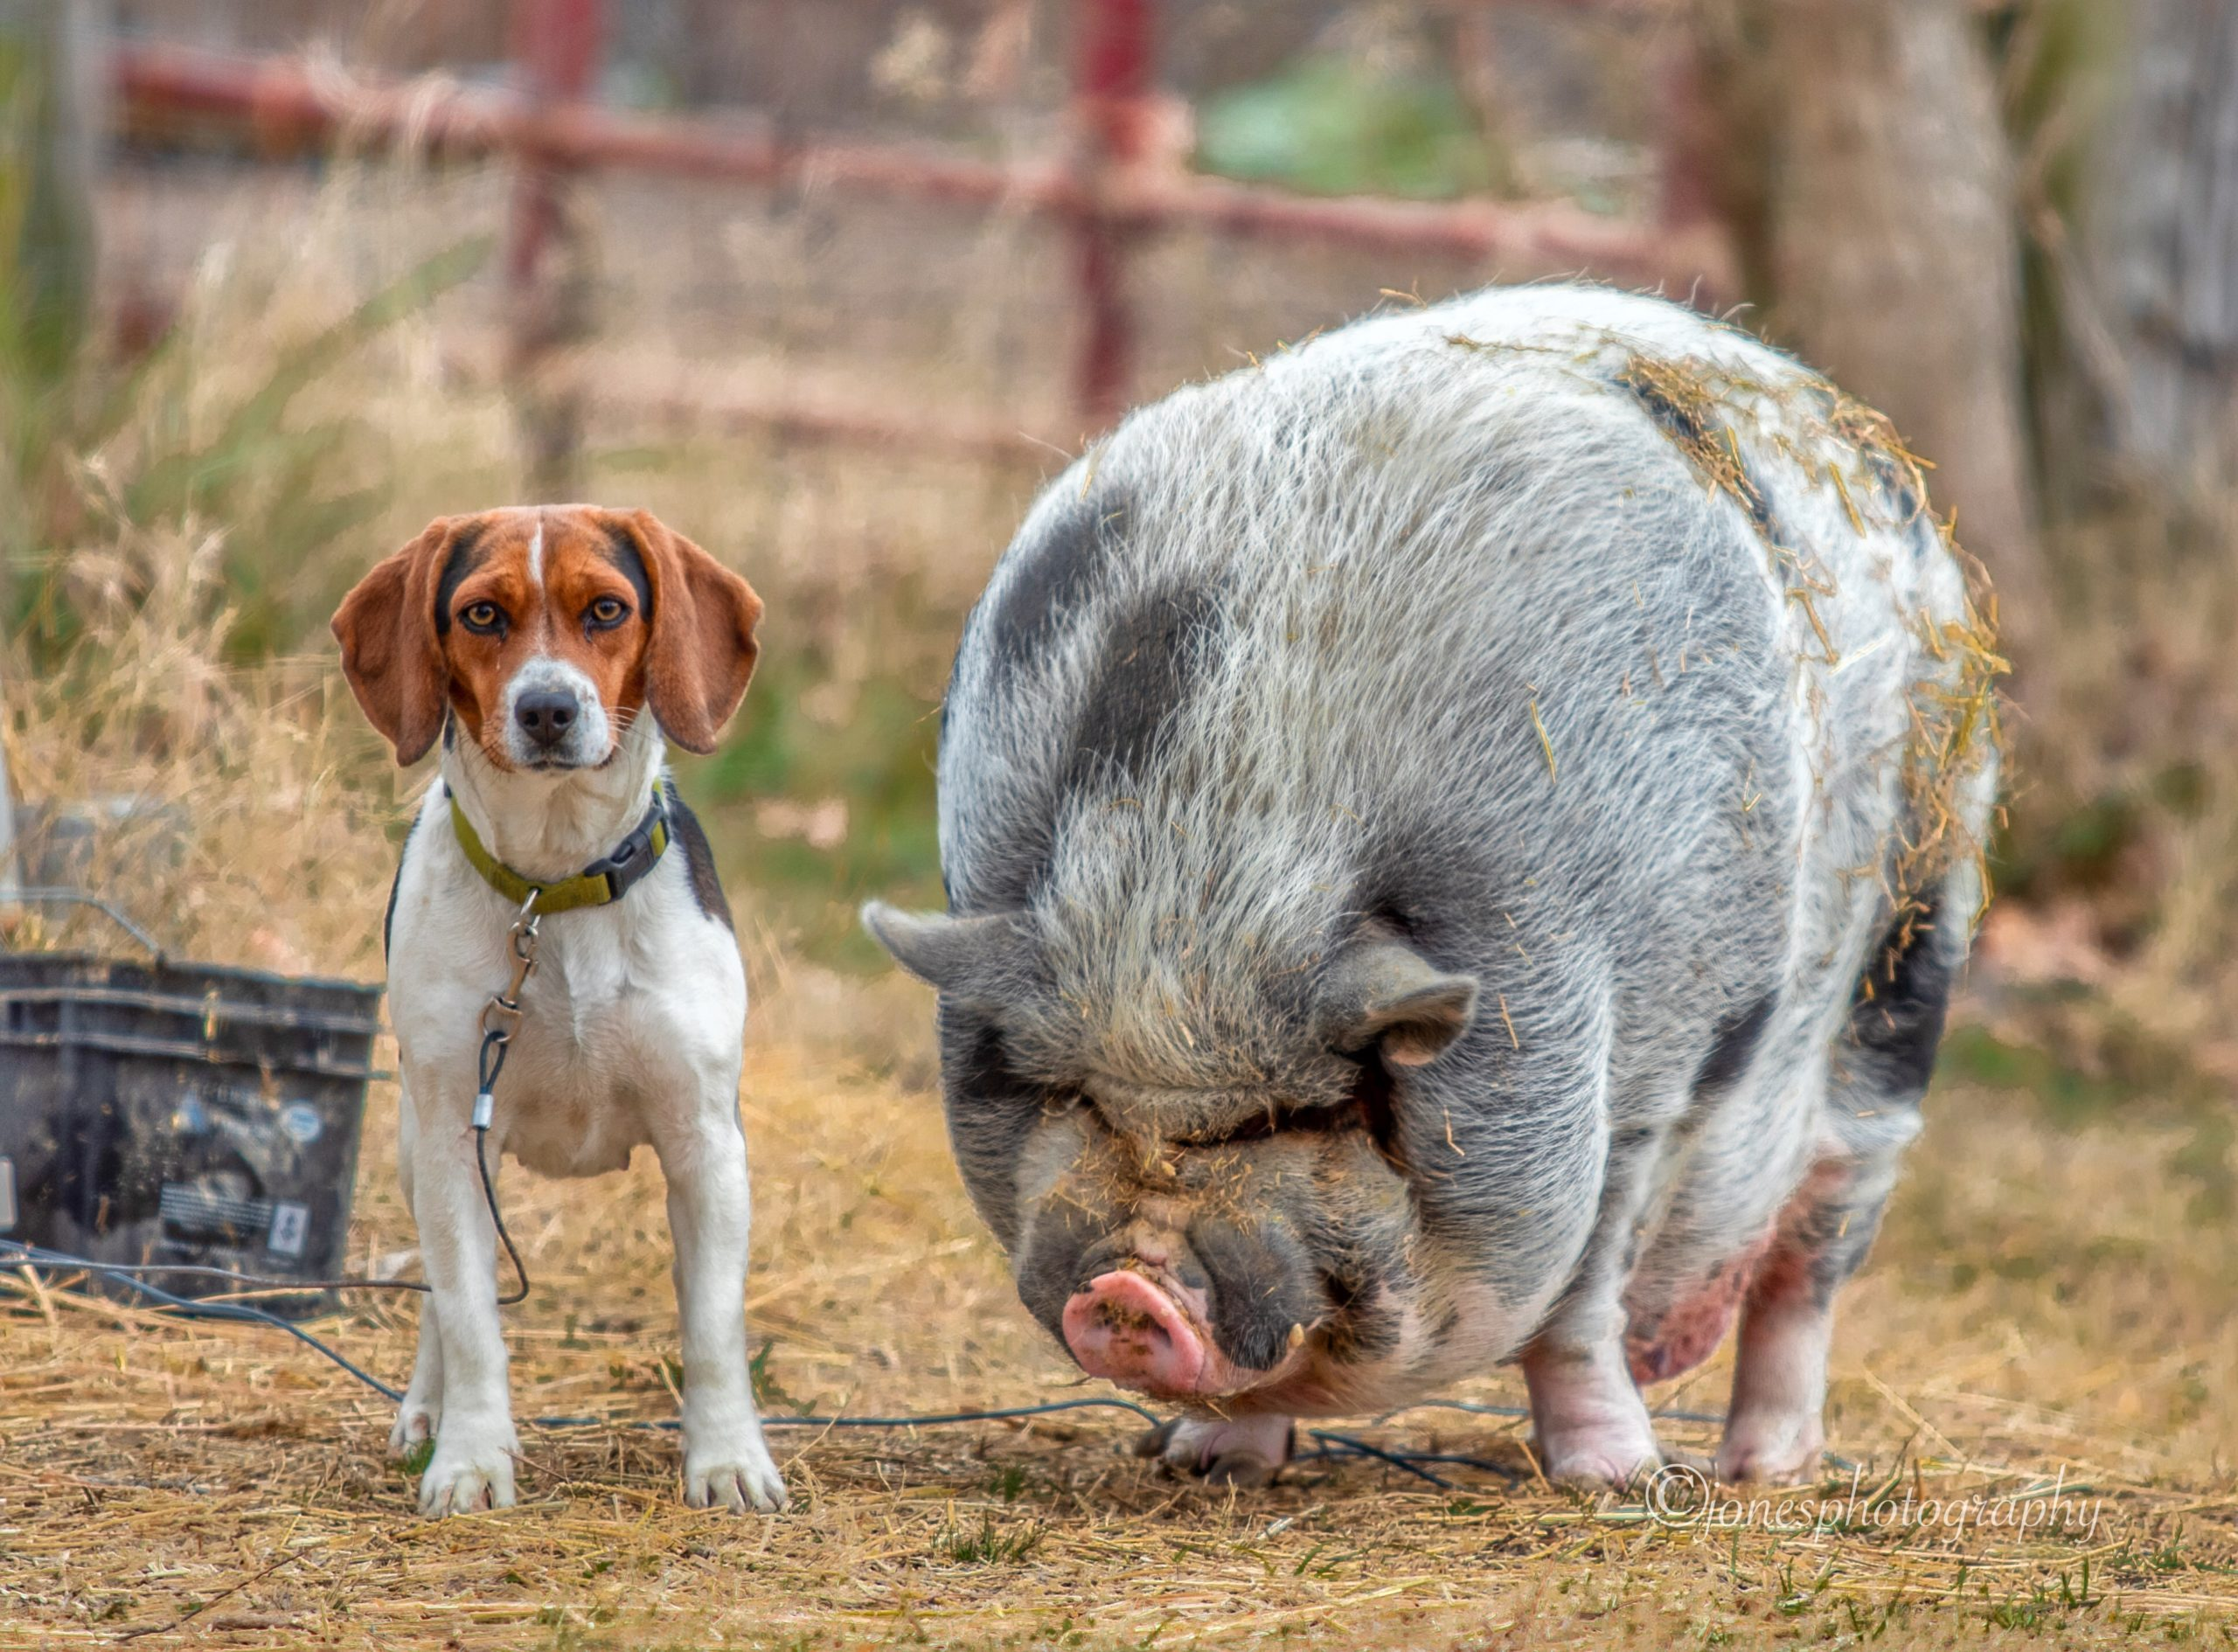 a dog and a pig pose for a picture